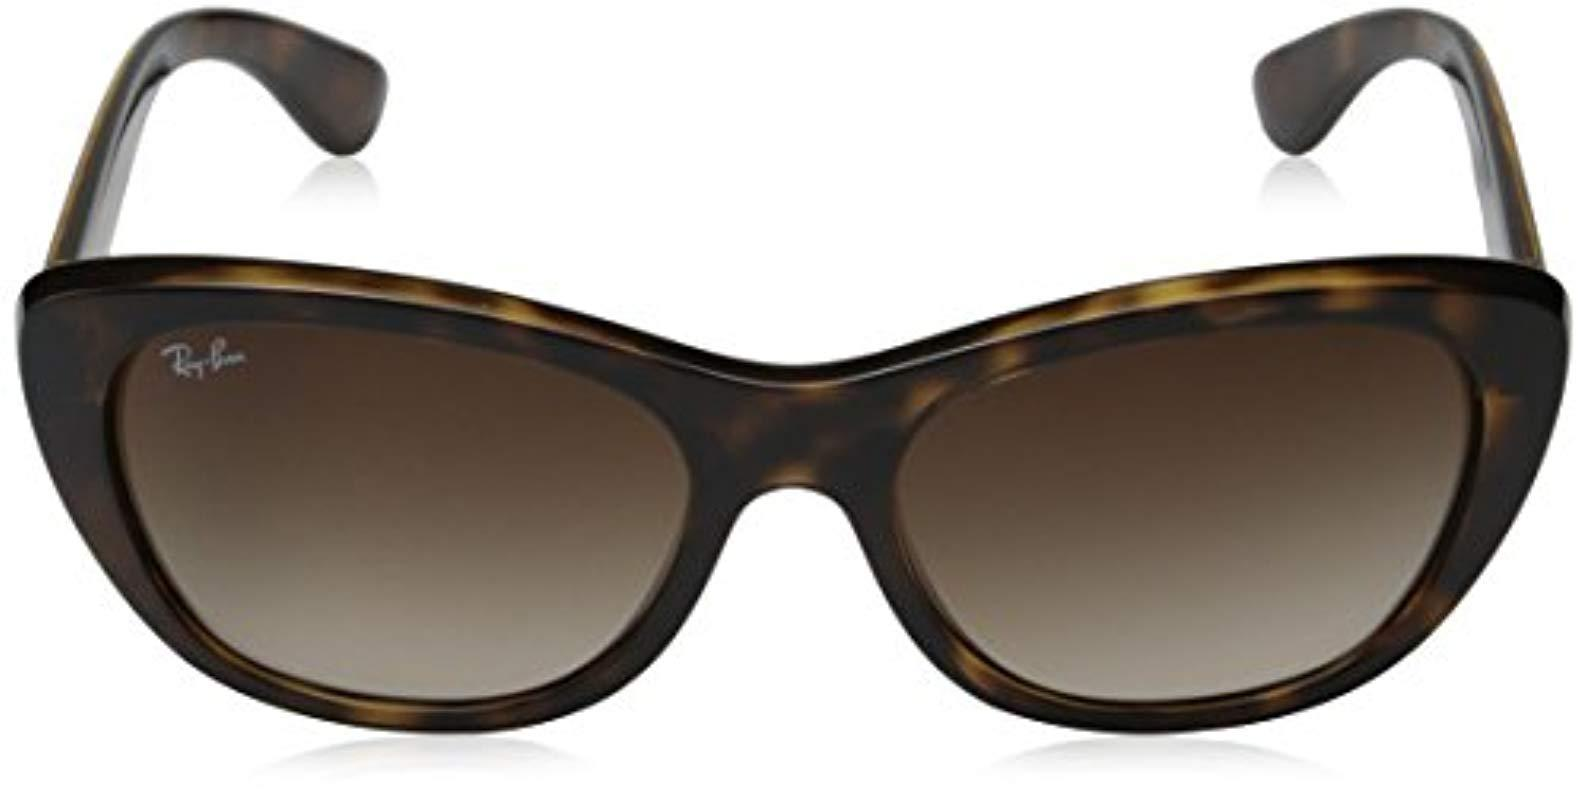 9b236467f3 Ray-Ban Sonnenbrille (rb 4227) - Save 1% - Lyst